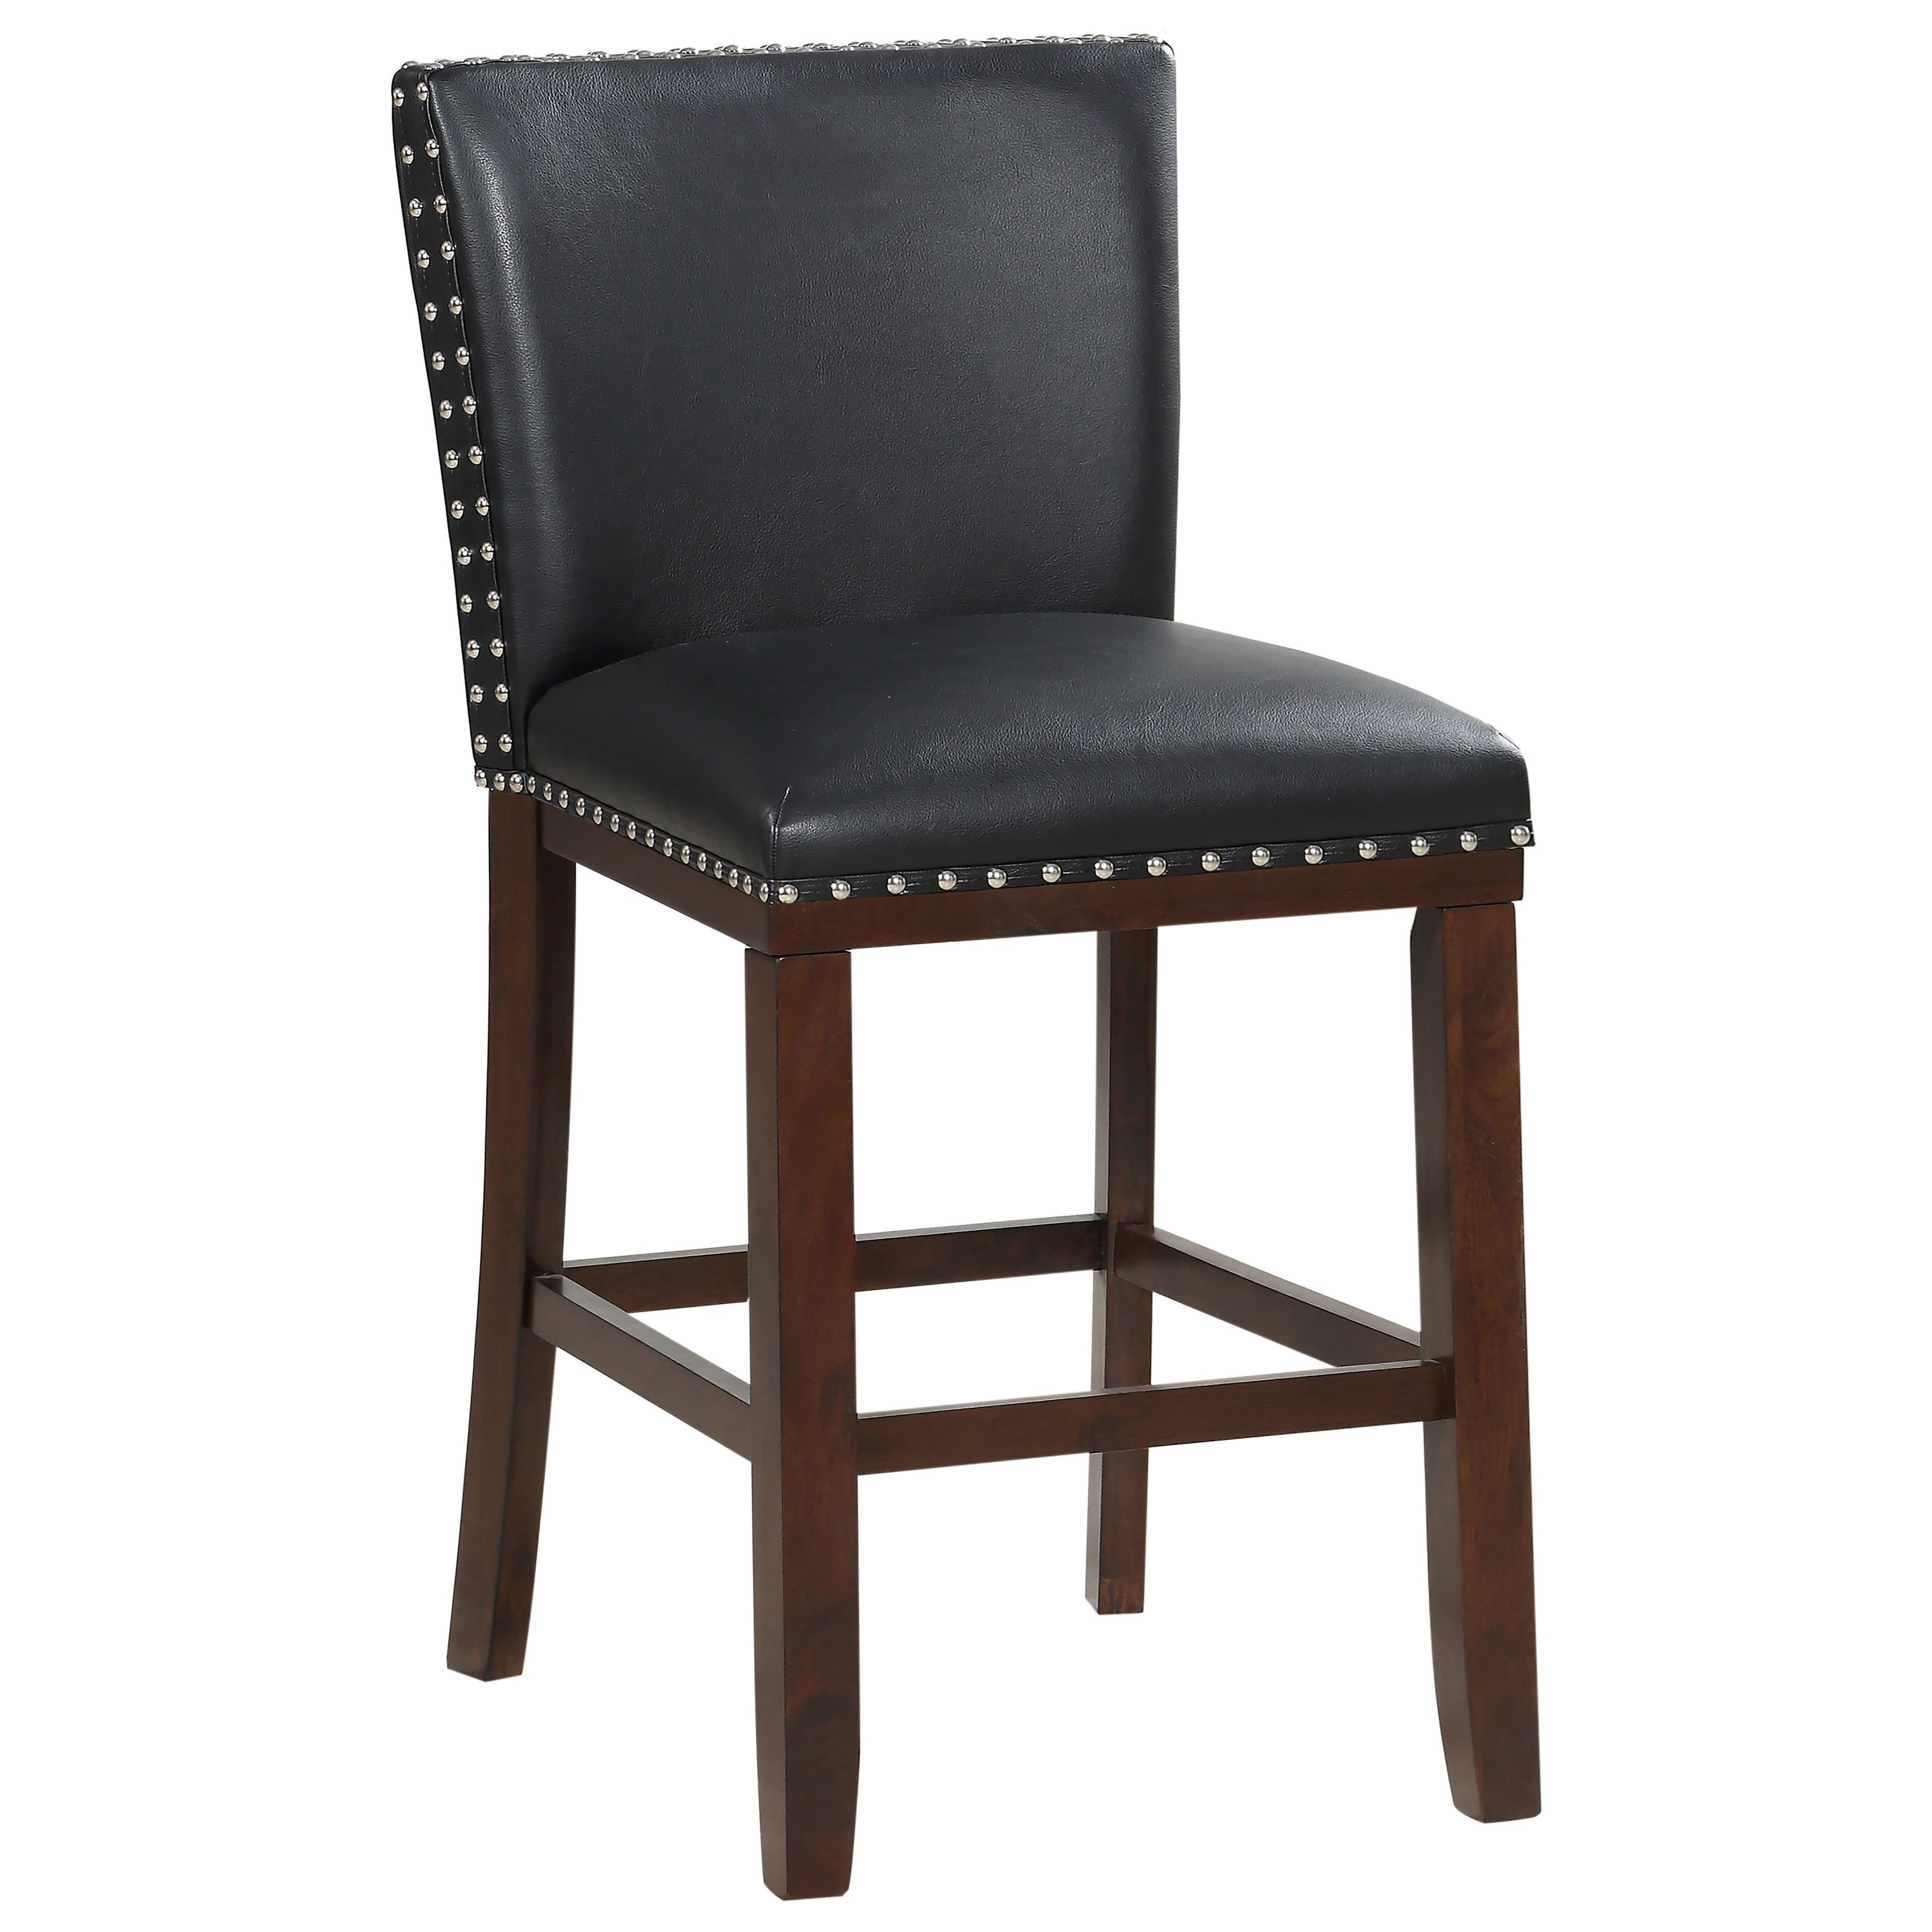 Tiffany Bonded Counter Chair by Steve Silver at Northeast Factory Direct